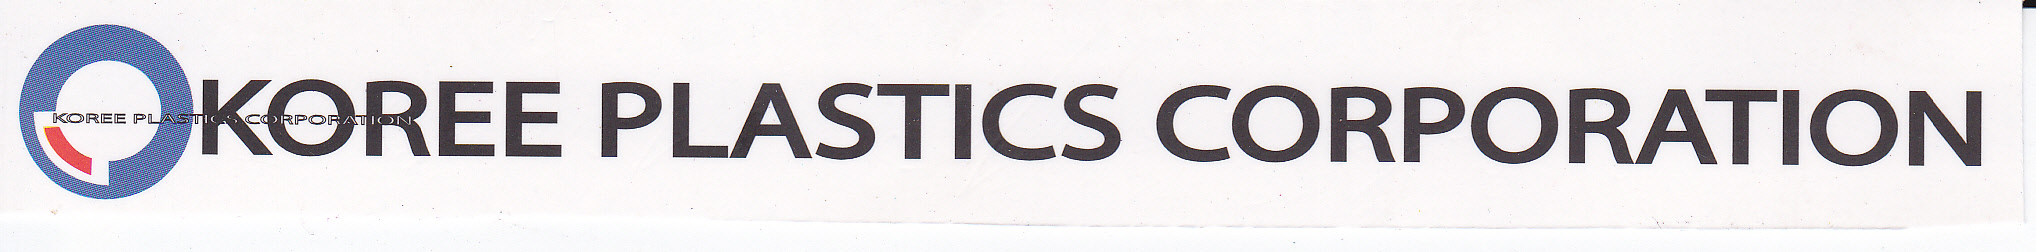 Ko Ree Plastics Corporation logo